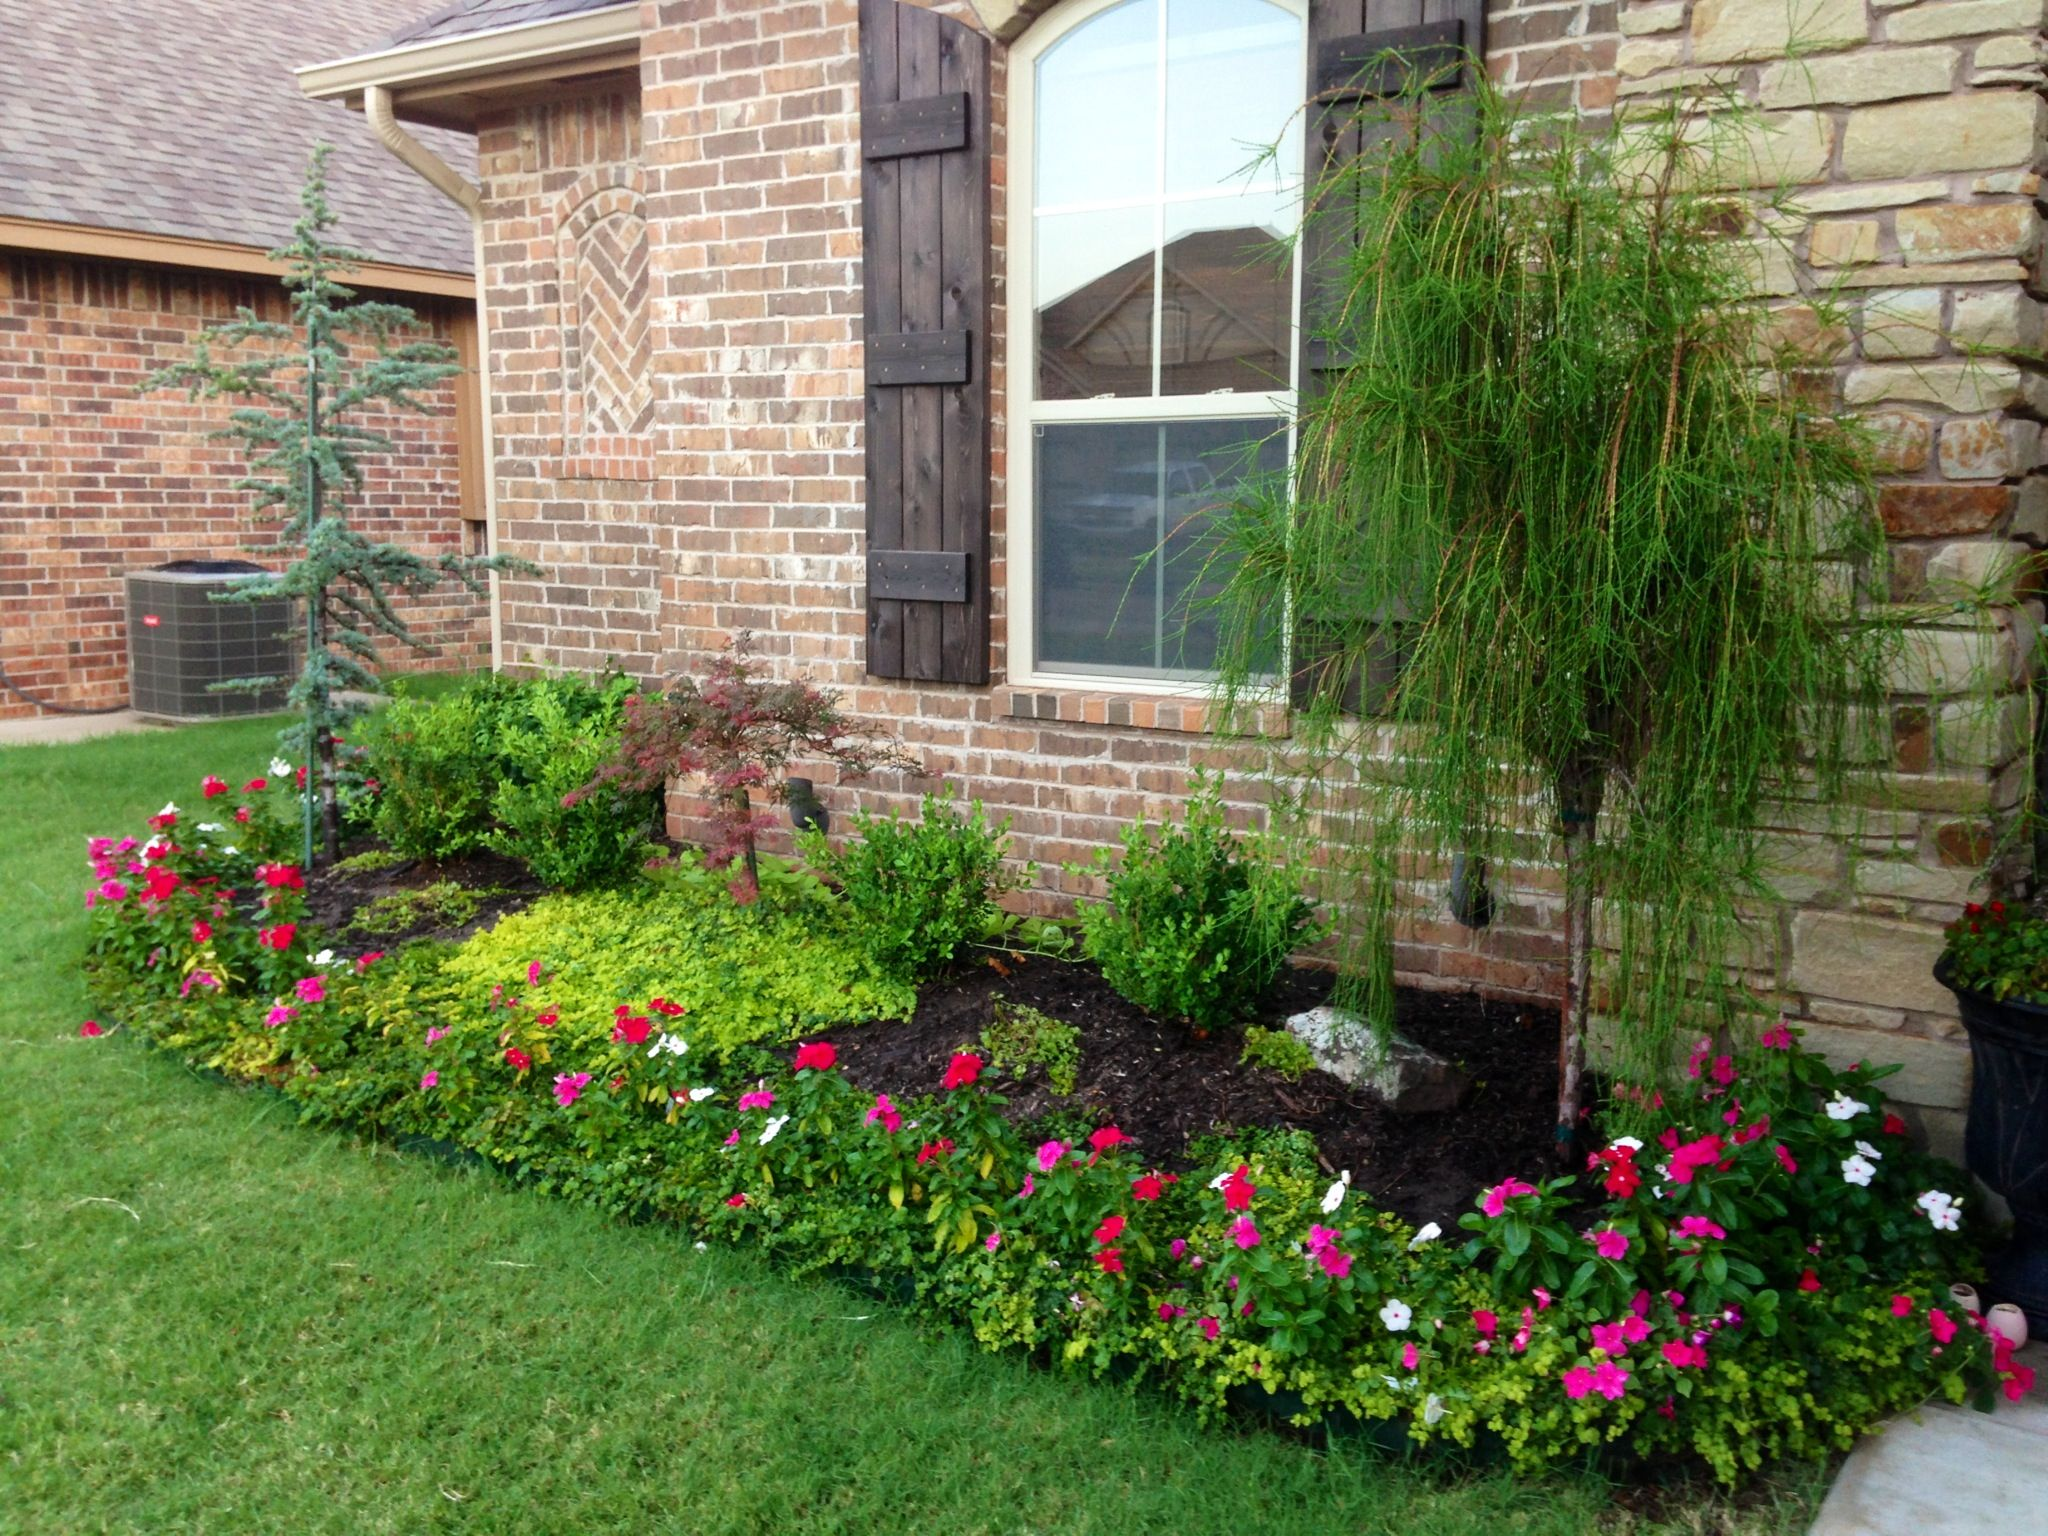 Flower bed with creeping Jenny ground cover. it is a